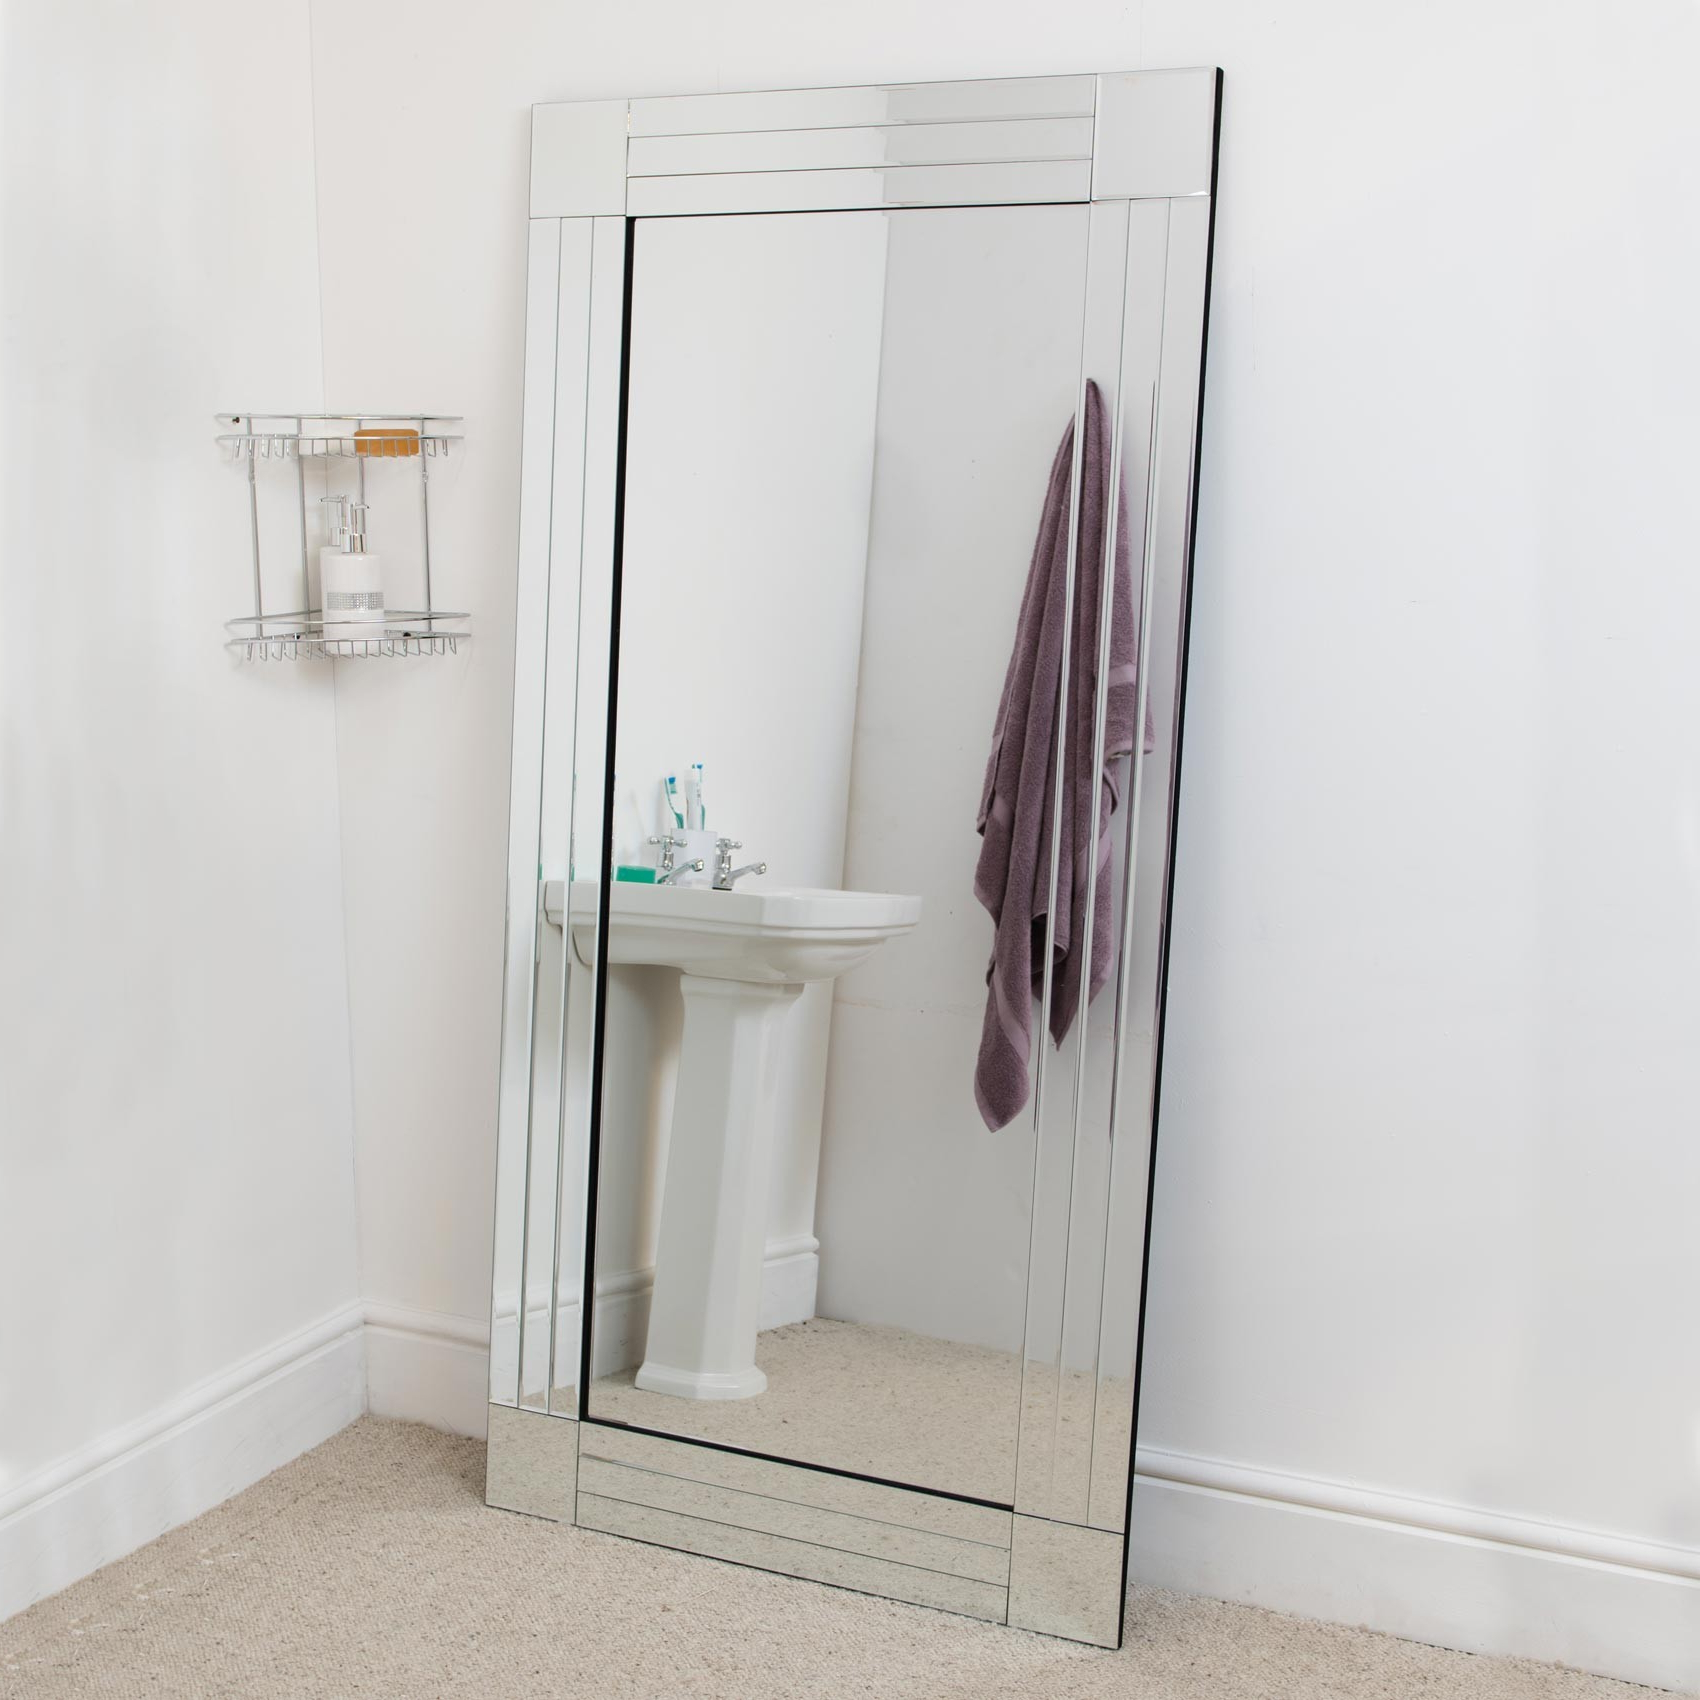 Most Popular Details About Large Bathroom Bevelled Edge Venetian Wall Mirror 5ft9 X 2ft9 174cm X 85cm Inside Large Bathroom Wall Mirrors (View 12 of 20)